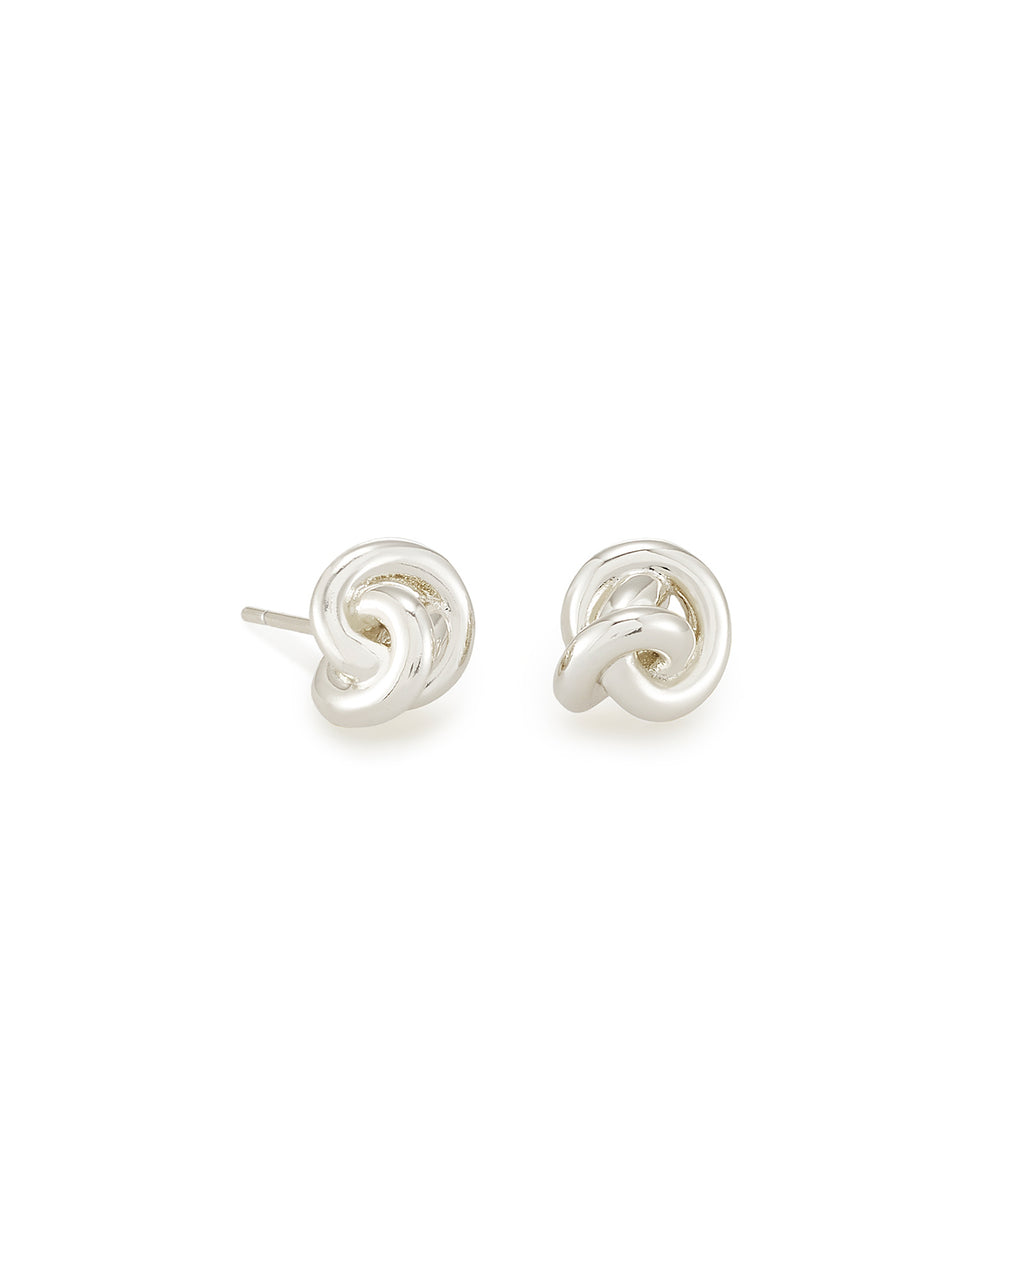 Presleigh Love Knot Stud Earrings In Bright Silver